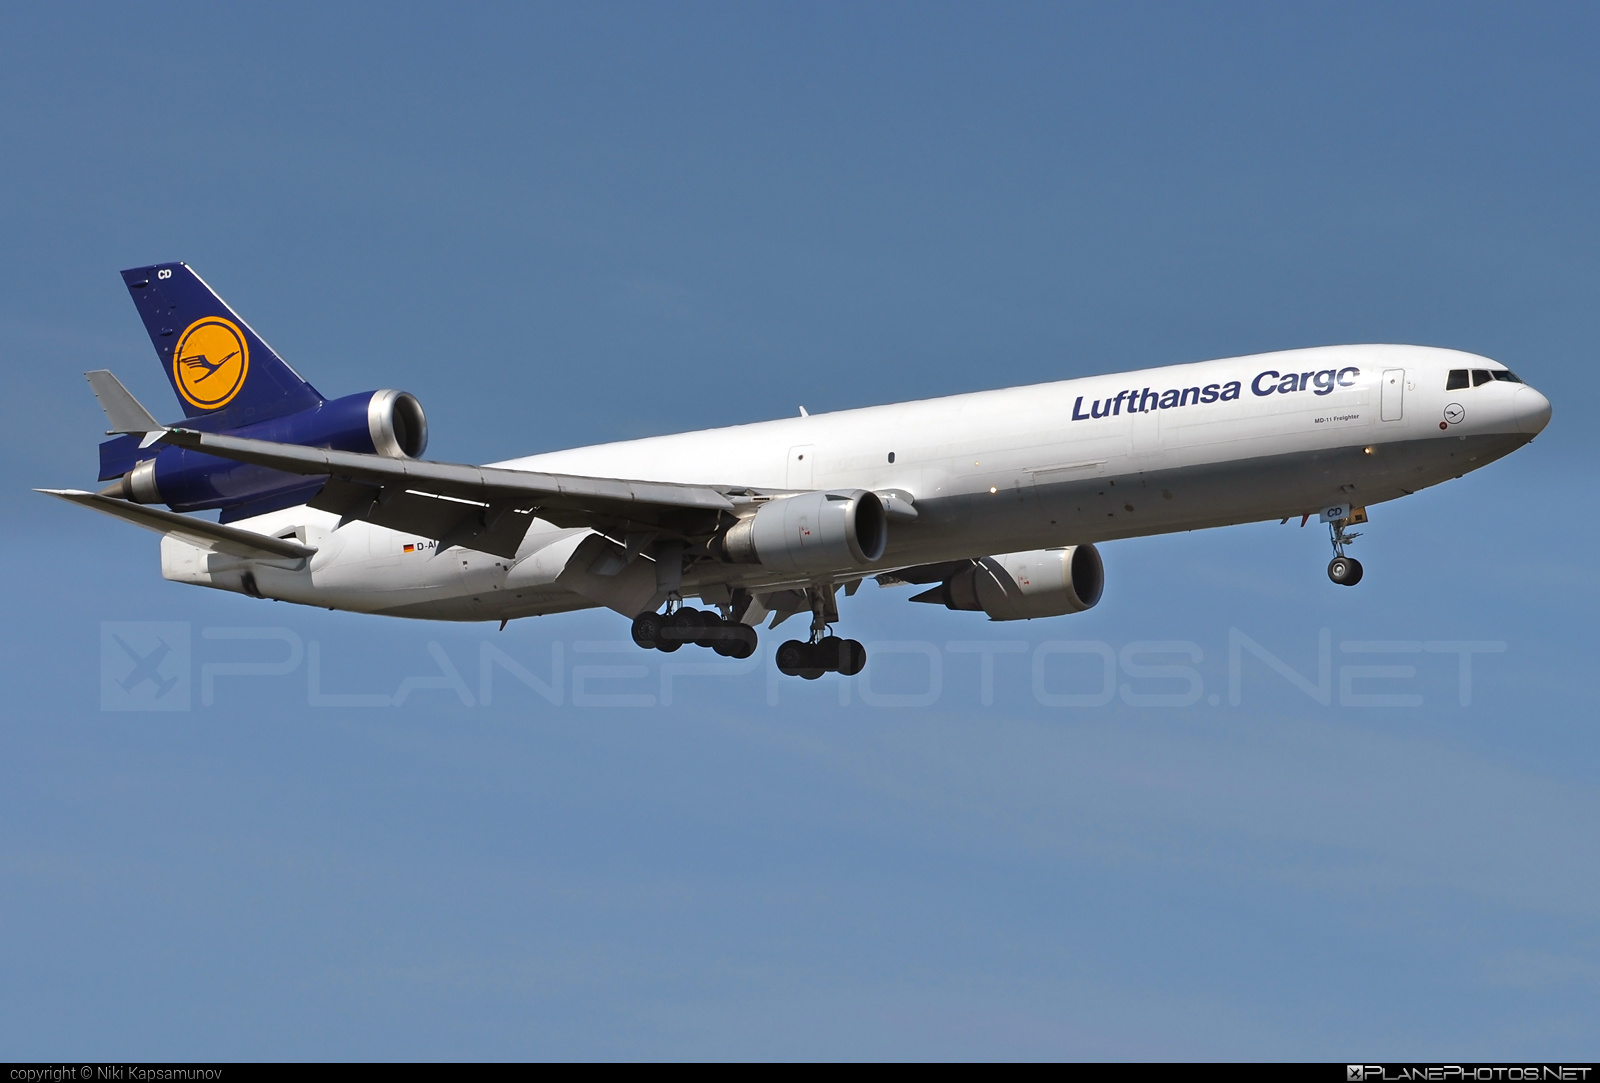 McDonnell Douglas MD-11F - D-ALCD operated by Lufthansa Cargo #lufthansa #lufthansacargo #mcdonnelldouglas #mcdonnelldouglas11 #mcdonnelldouglas11f #mcdonnelldouglasmd11 #mcdonnelldouglasmd11f #md11 #md11f